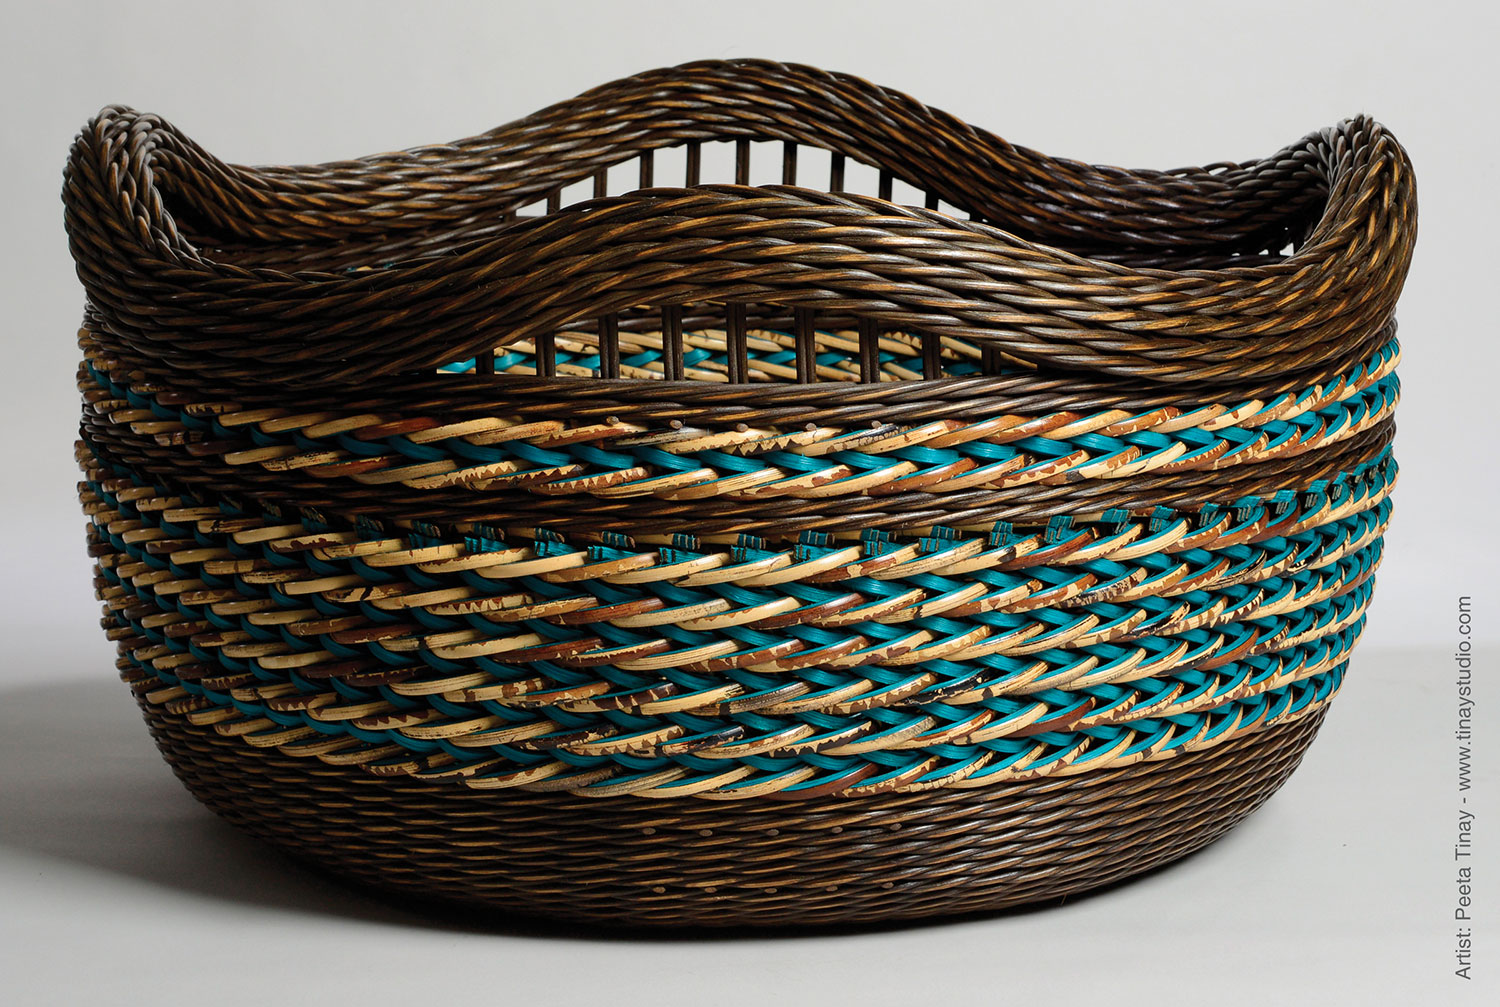 Peeta-Tinay-teal-brown-basket.jpg